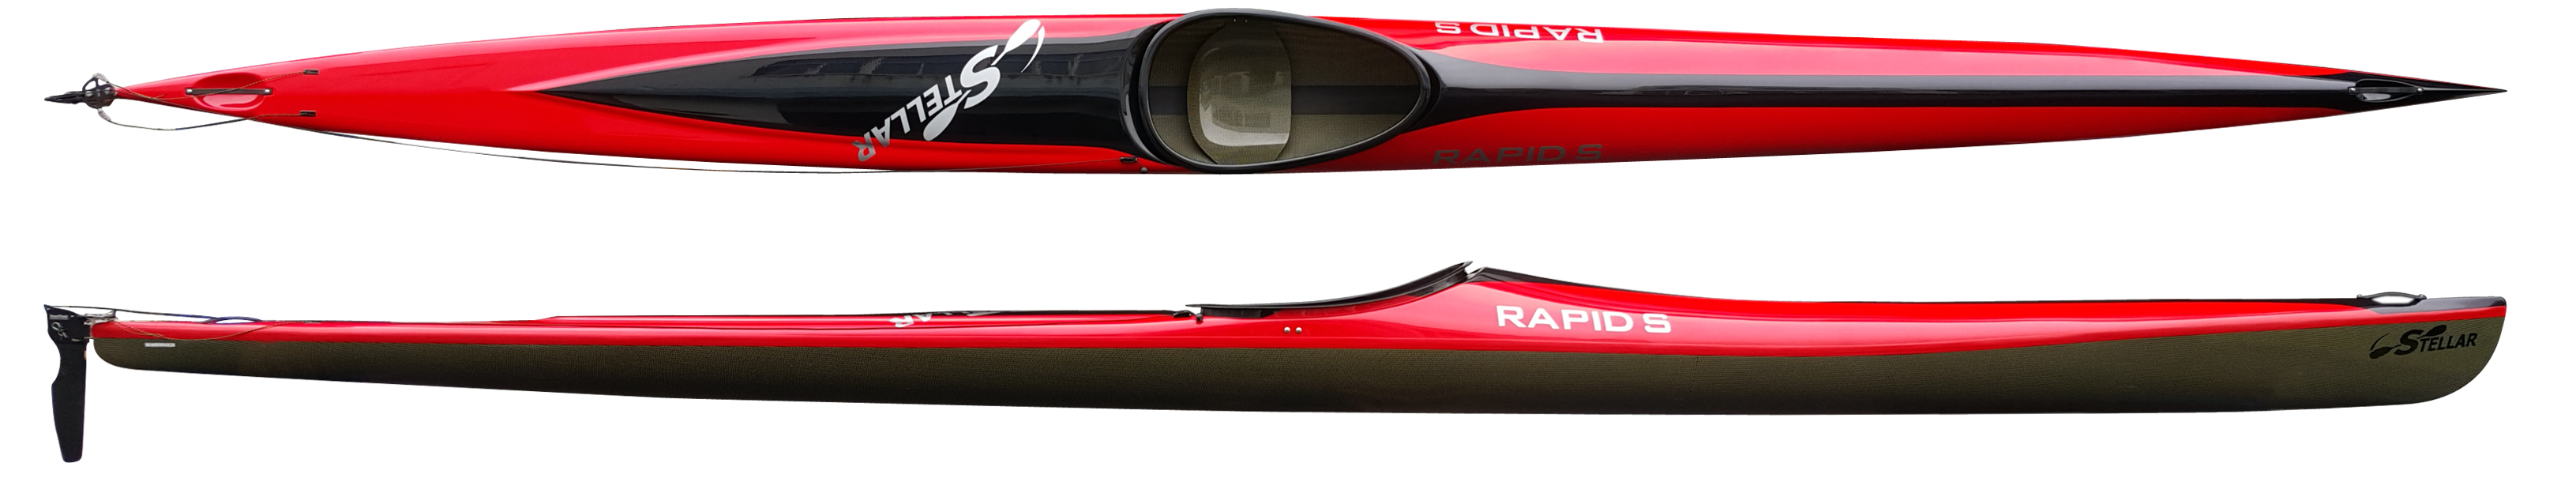 Kayaks: Rapid-S Multisport Kayak by Stellar Kayaks - Image 4721